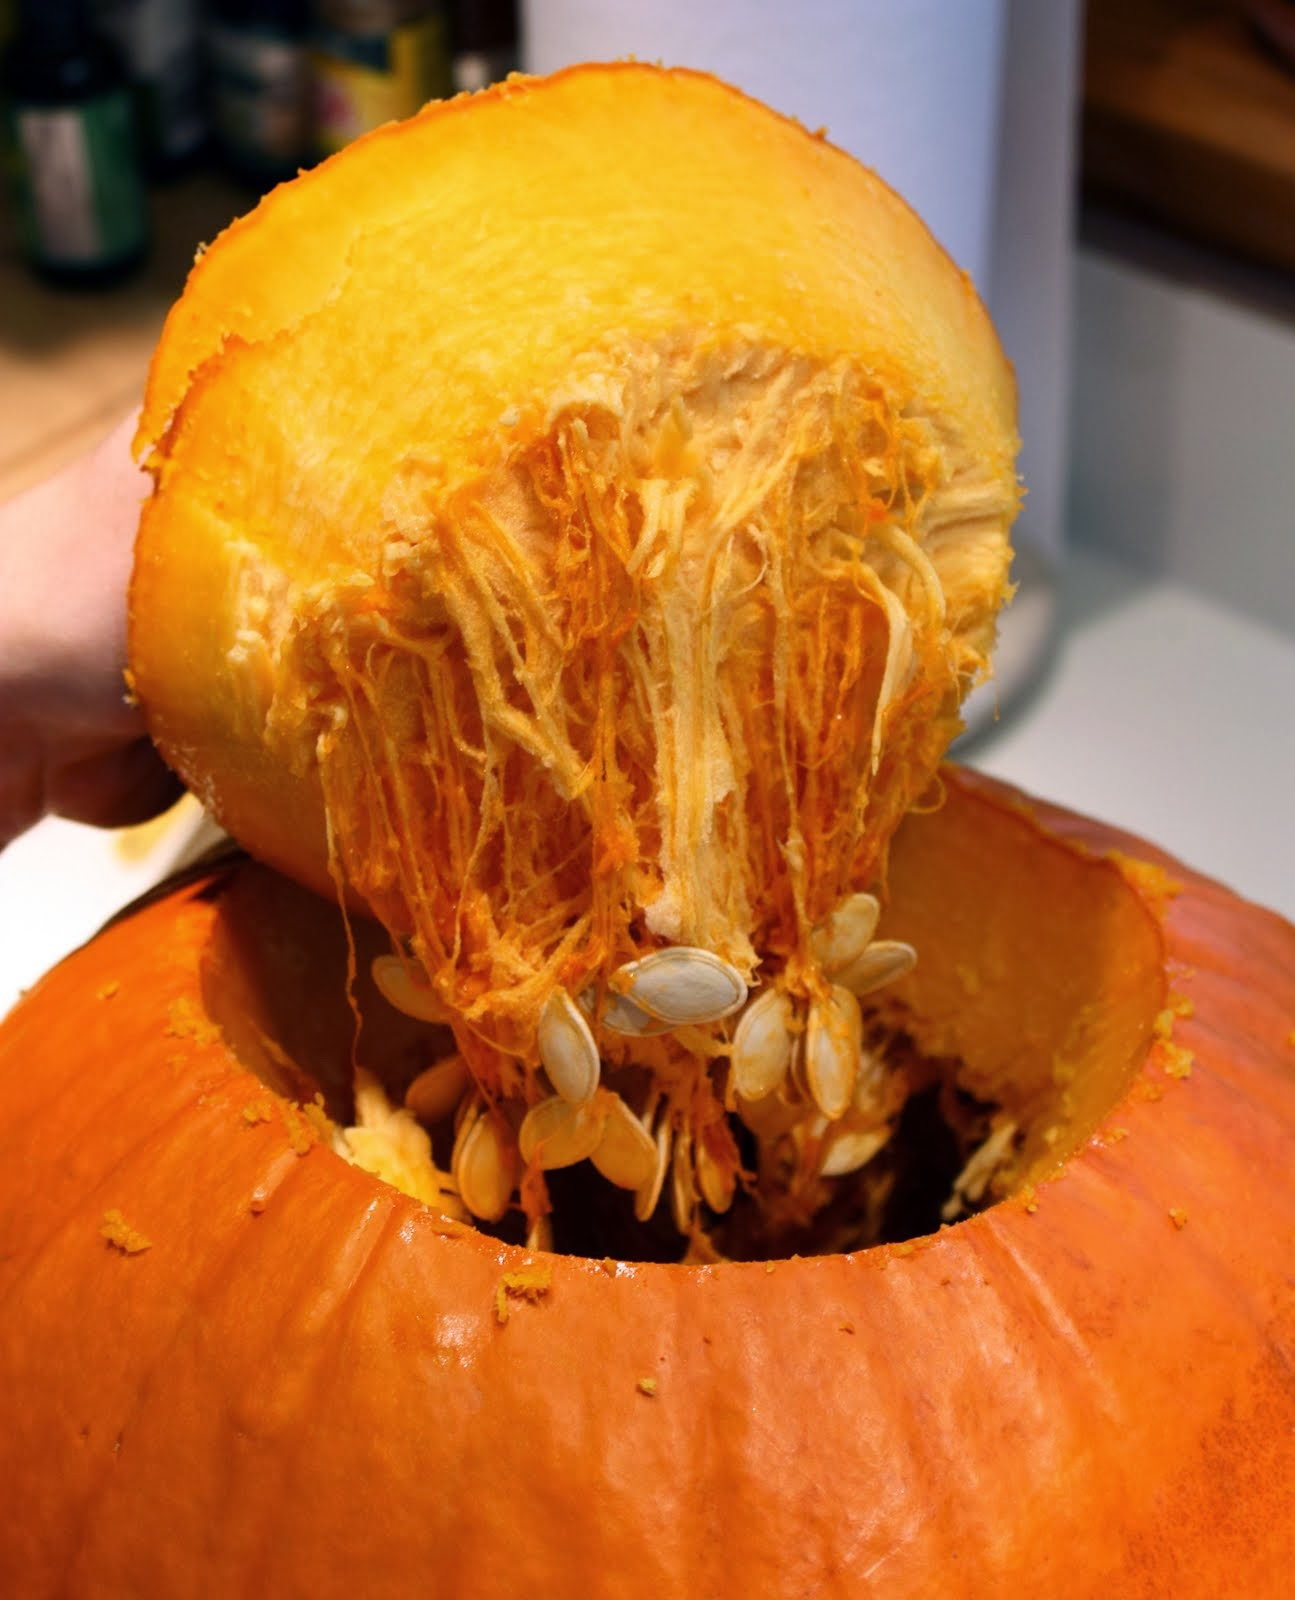 Pumpkin from inside